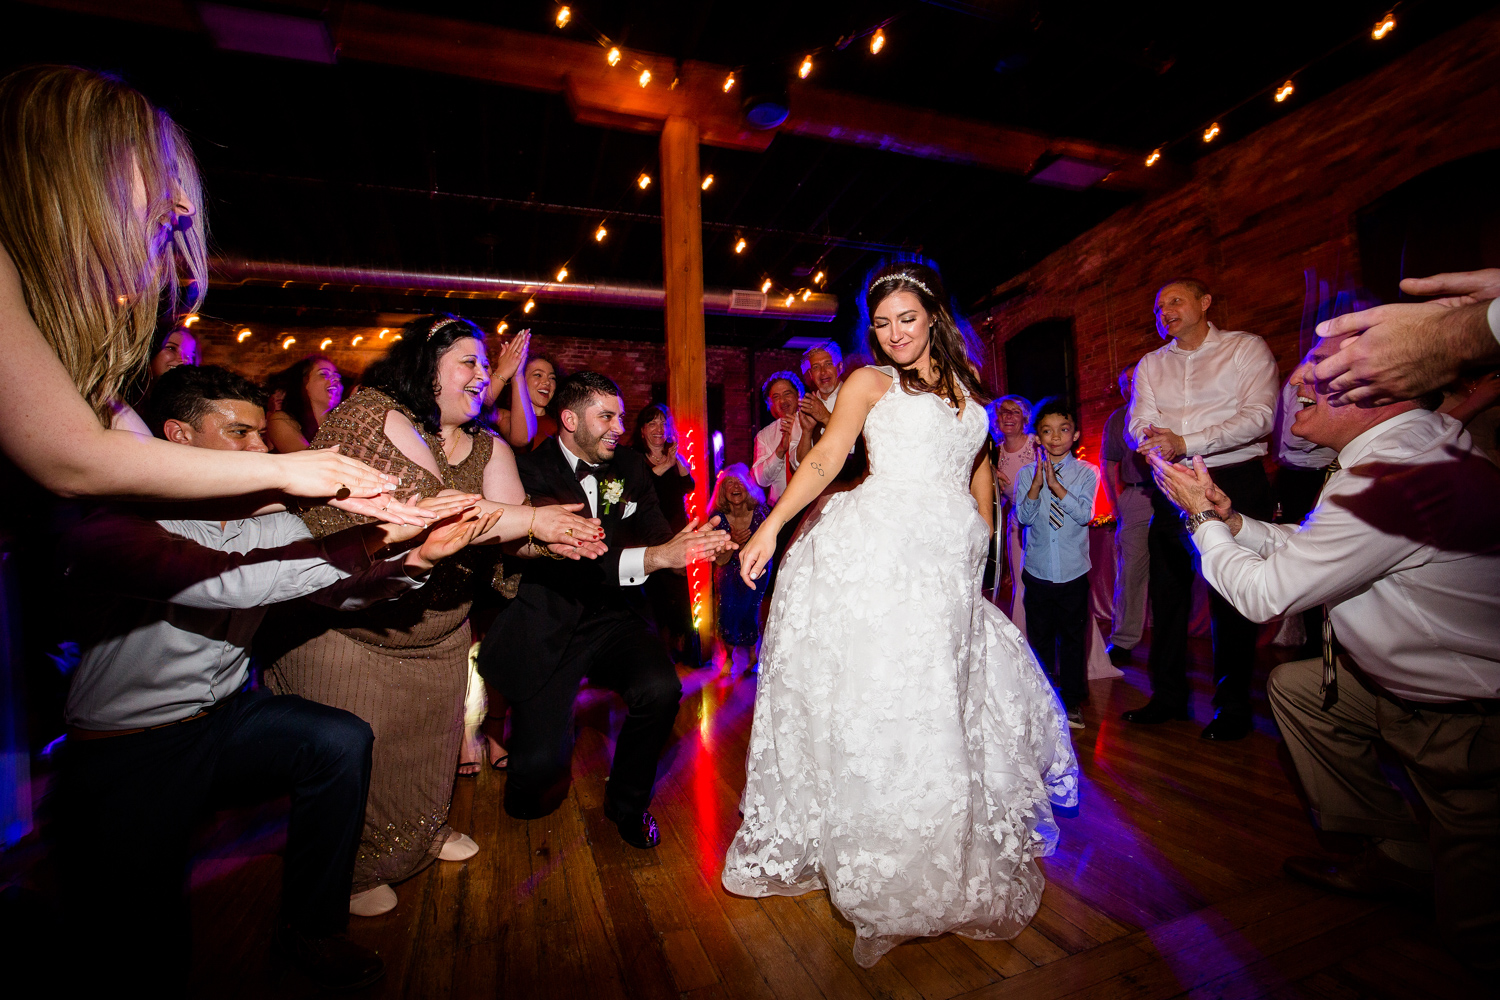 Bride and groom dancing Wedding Reception fun at Trailside Event Center Wedding in Peoria Illinois